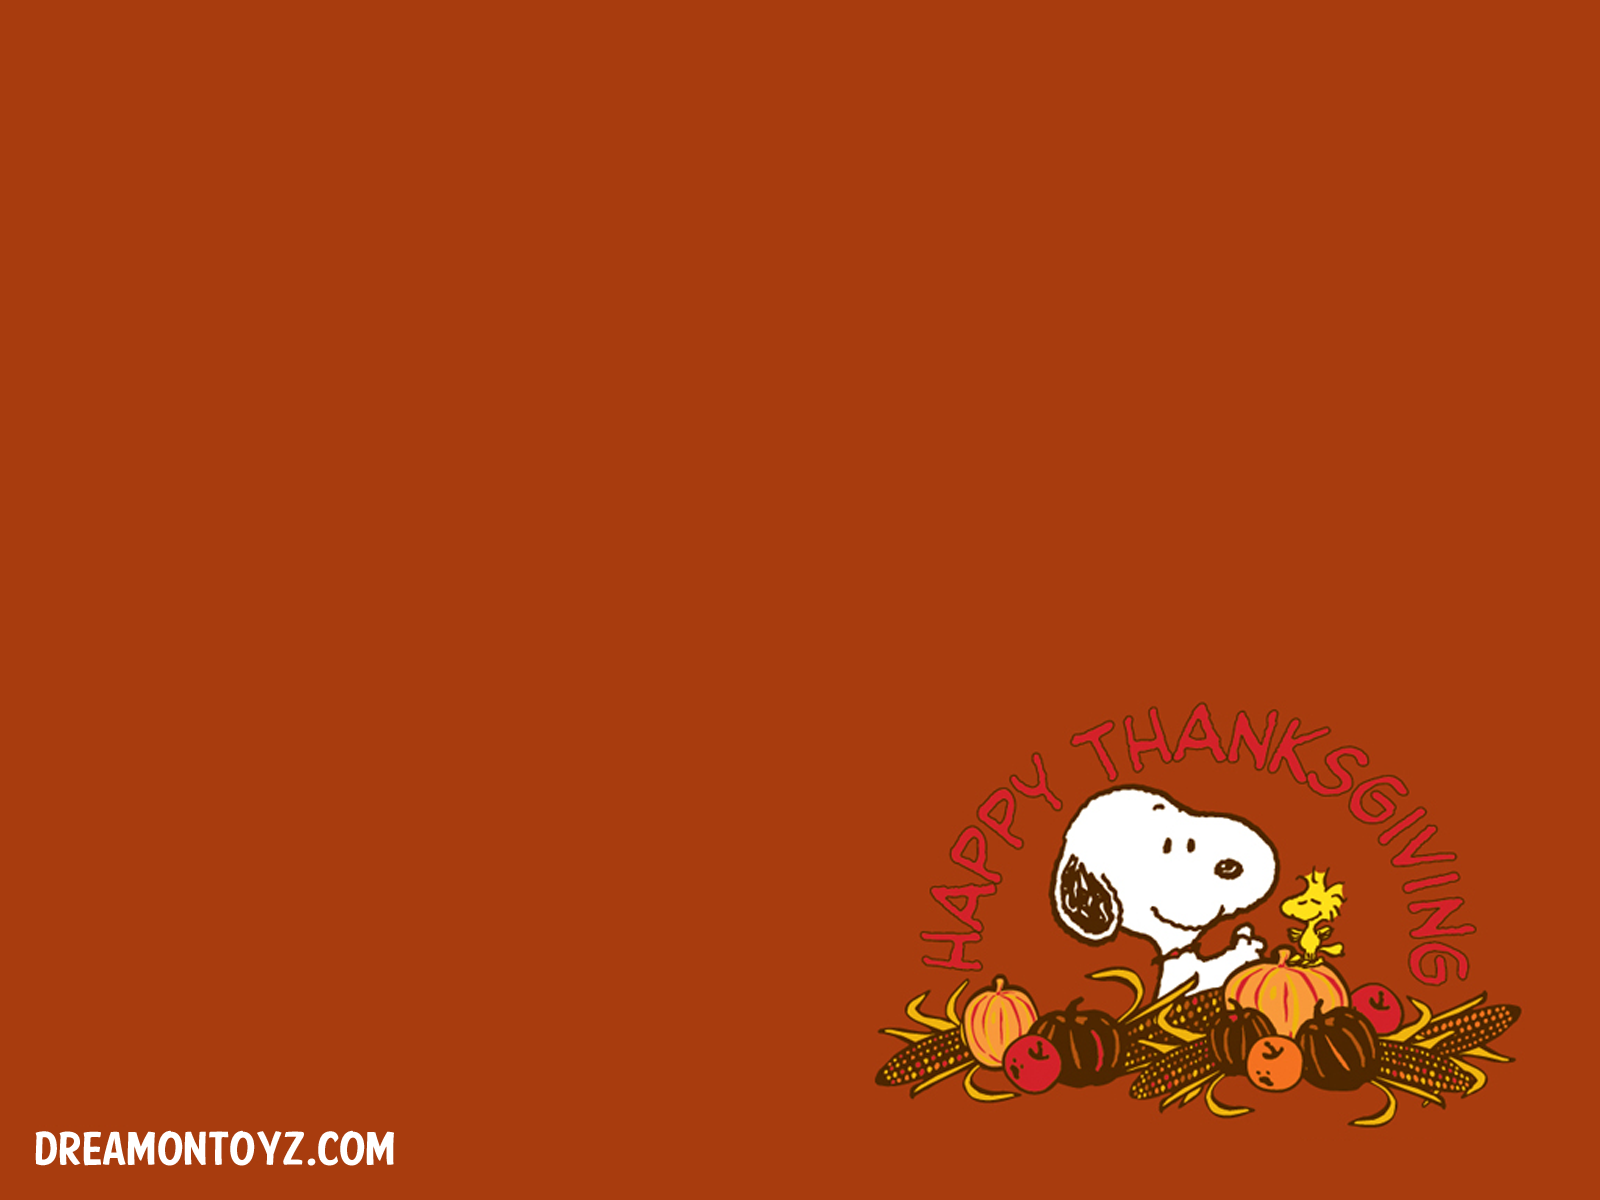 Free Cartoon Graphics Pics Gifs Photographs Peanuts Snoopy Thanksgiving Wallpapers Snoopy Wallpaper Thanksgiving Wallpaper Free Thanksgiving Wallpaper